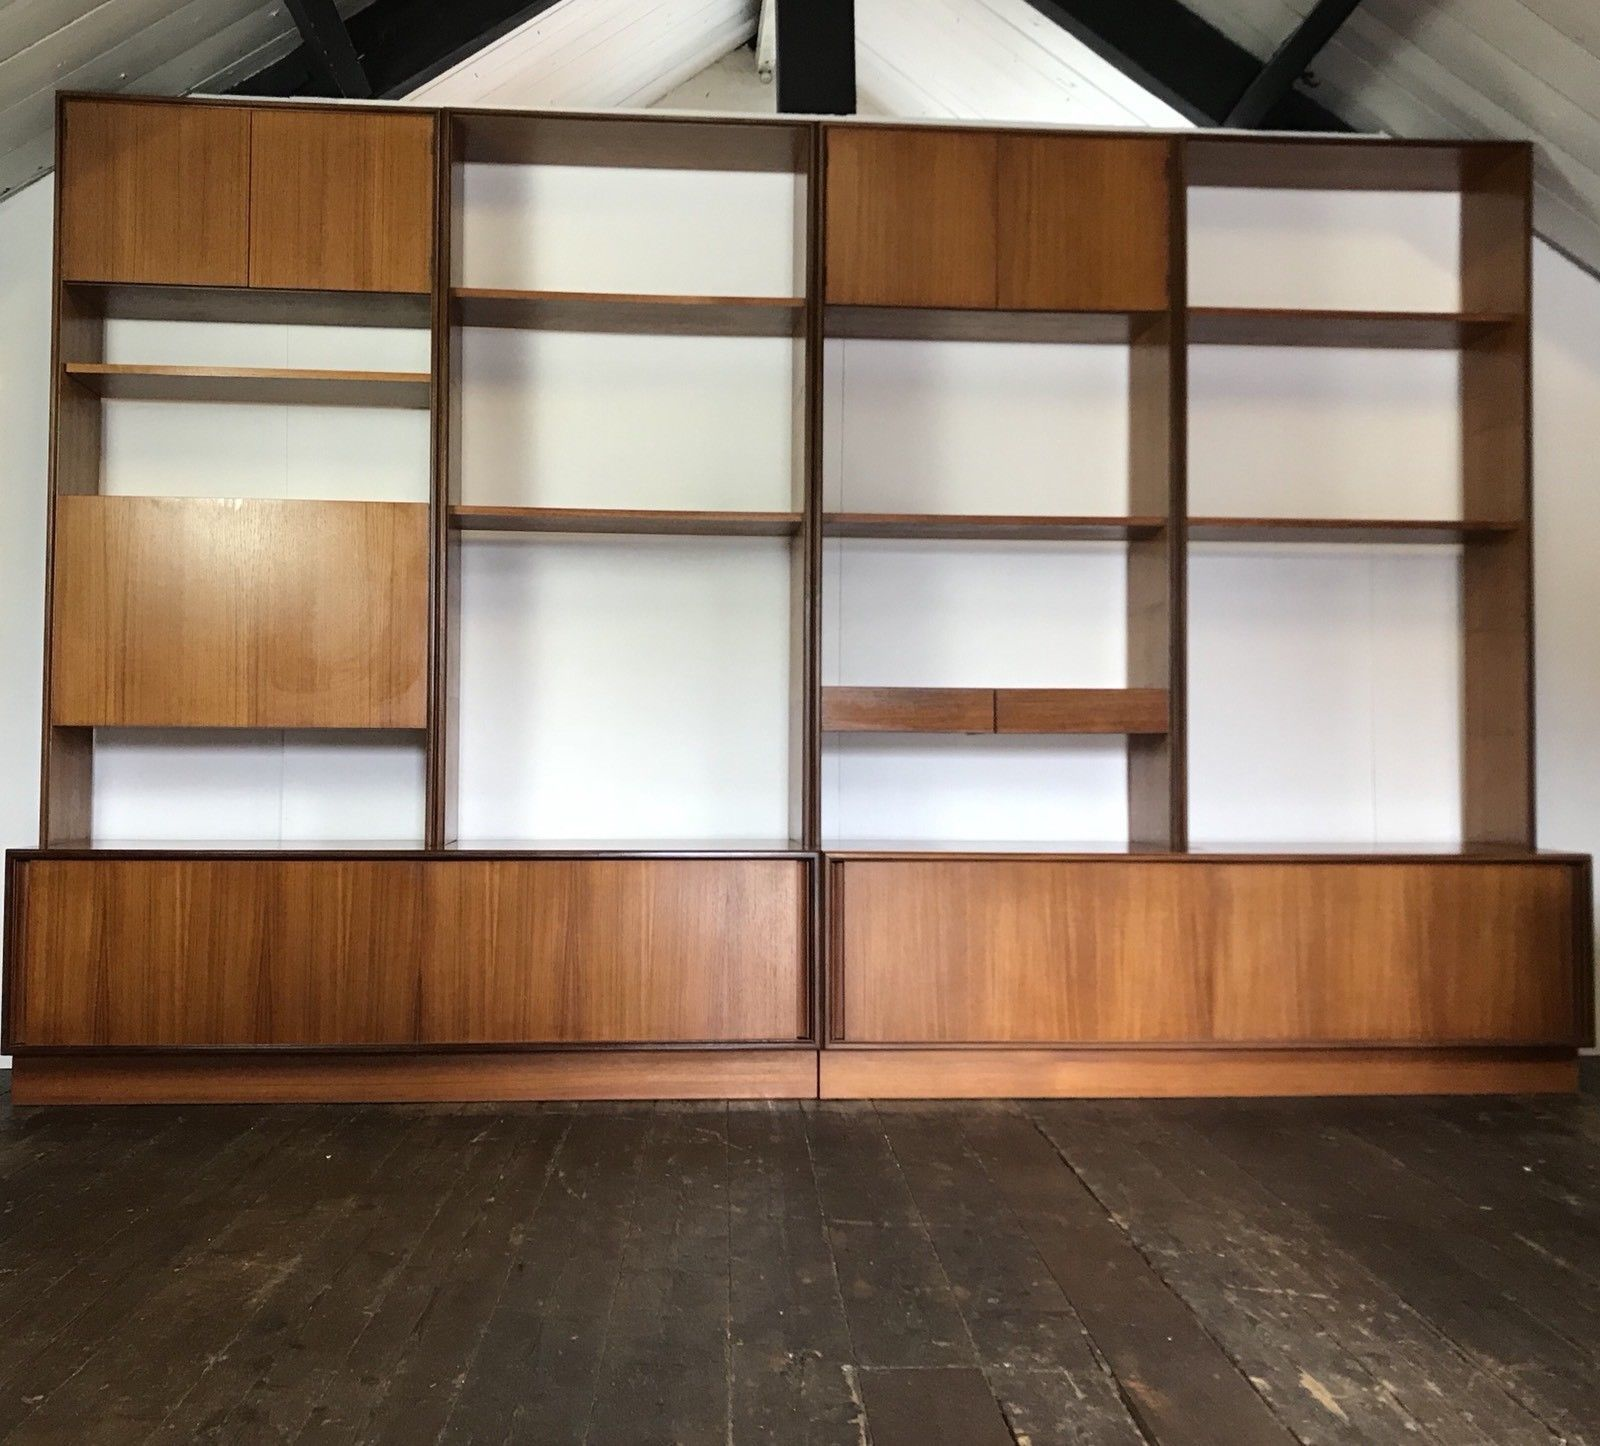 vtg-mid-century-10ft-g-plan-modular-ps-shelving-system-sideboard-wall-unit